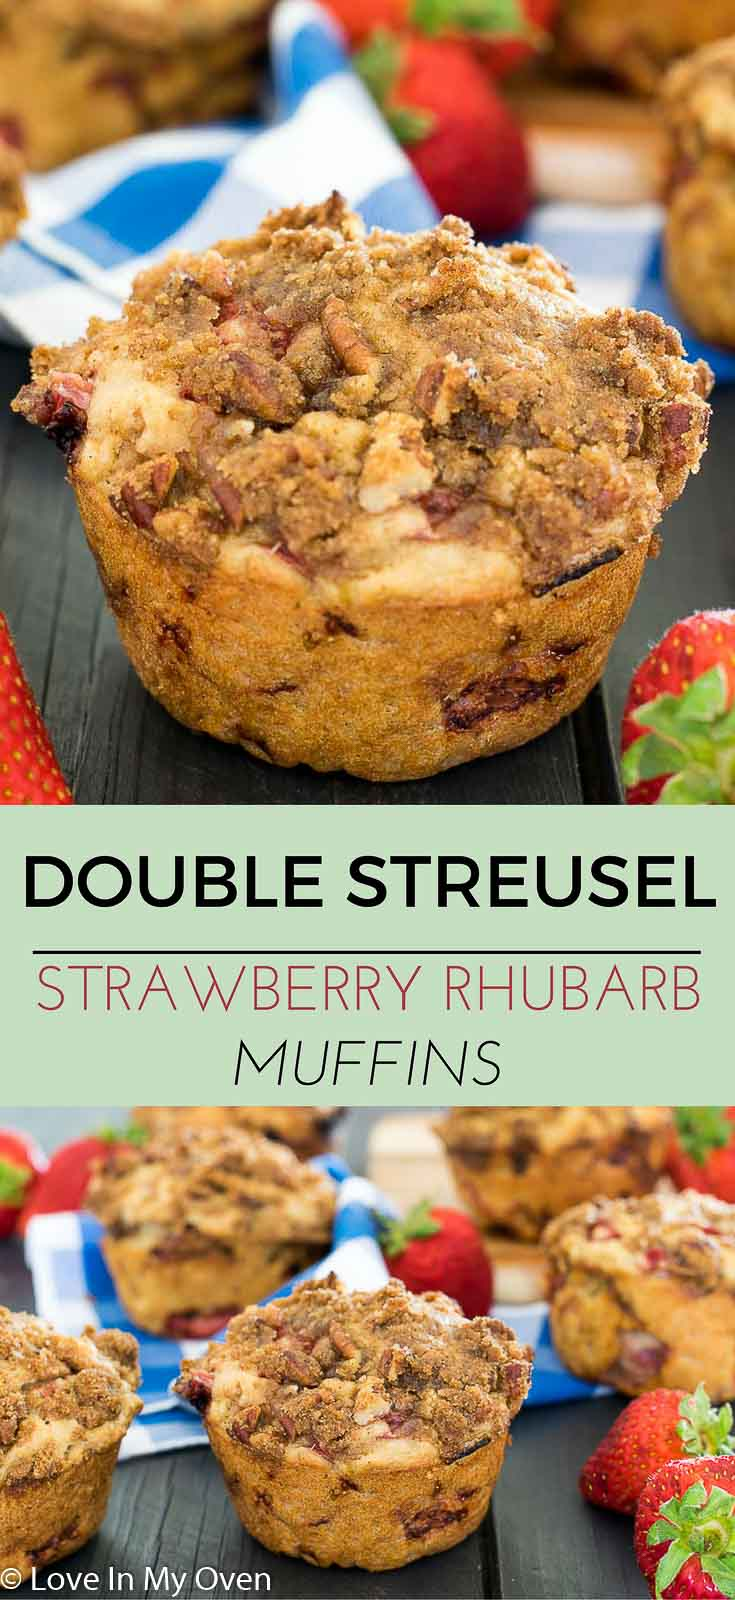 Bakery-style jumbo muffins packed with strawberries, rhubarb and 2 layers of streusel. They're dense, filling and oh, so delightful.